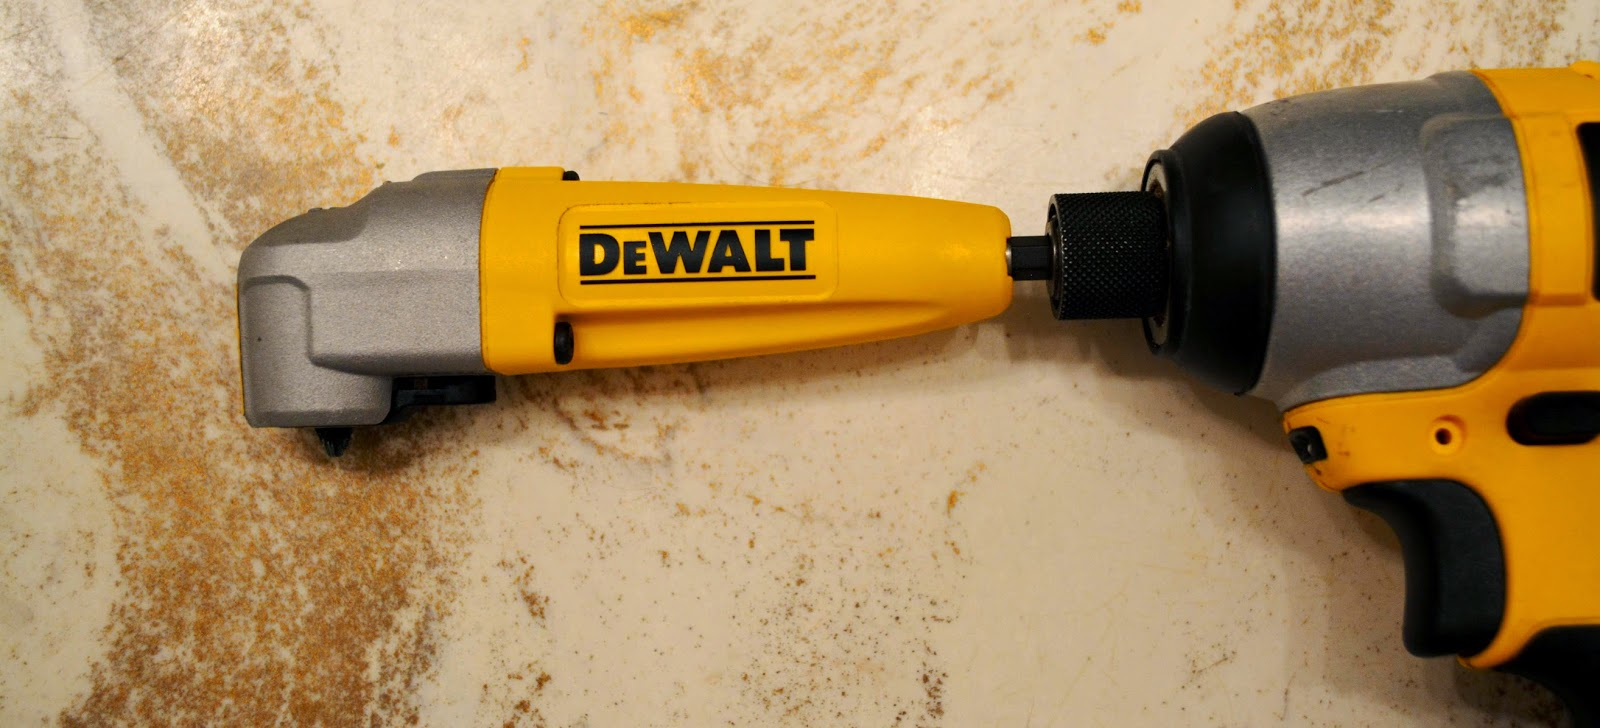 DeWalt Right Angle Adapter Attachment